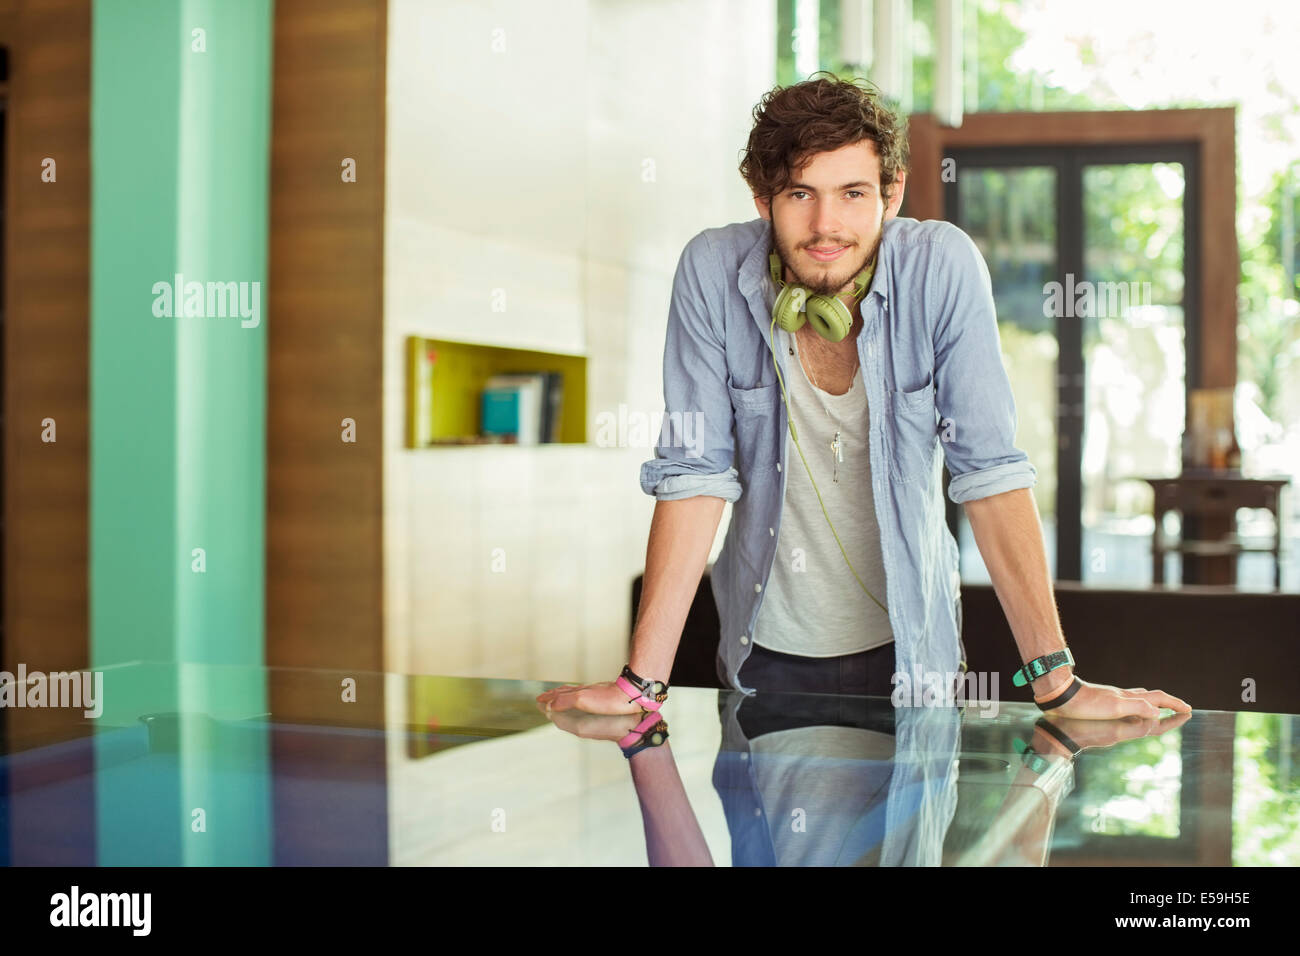 Man leaning on desk in office Photo Stock